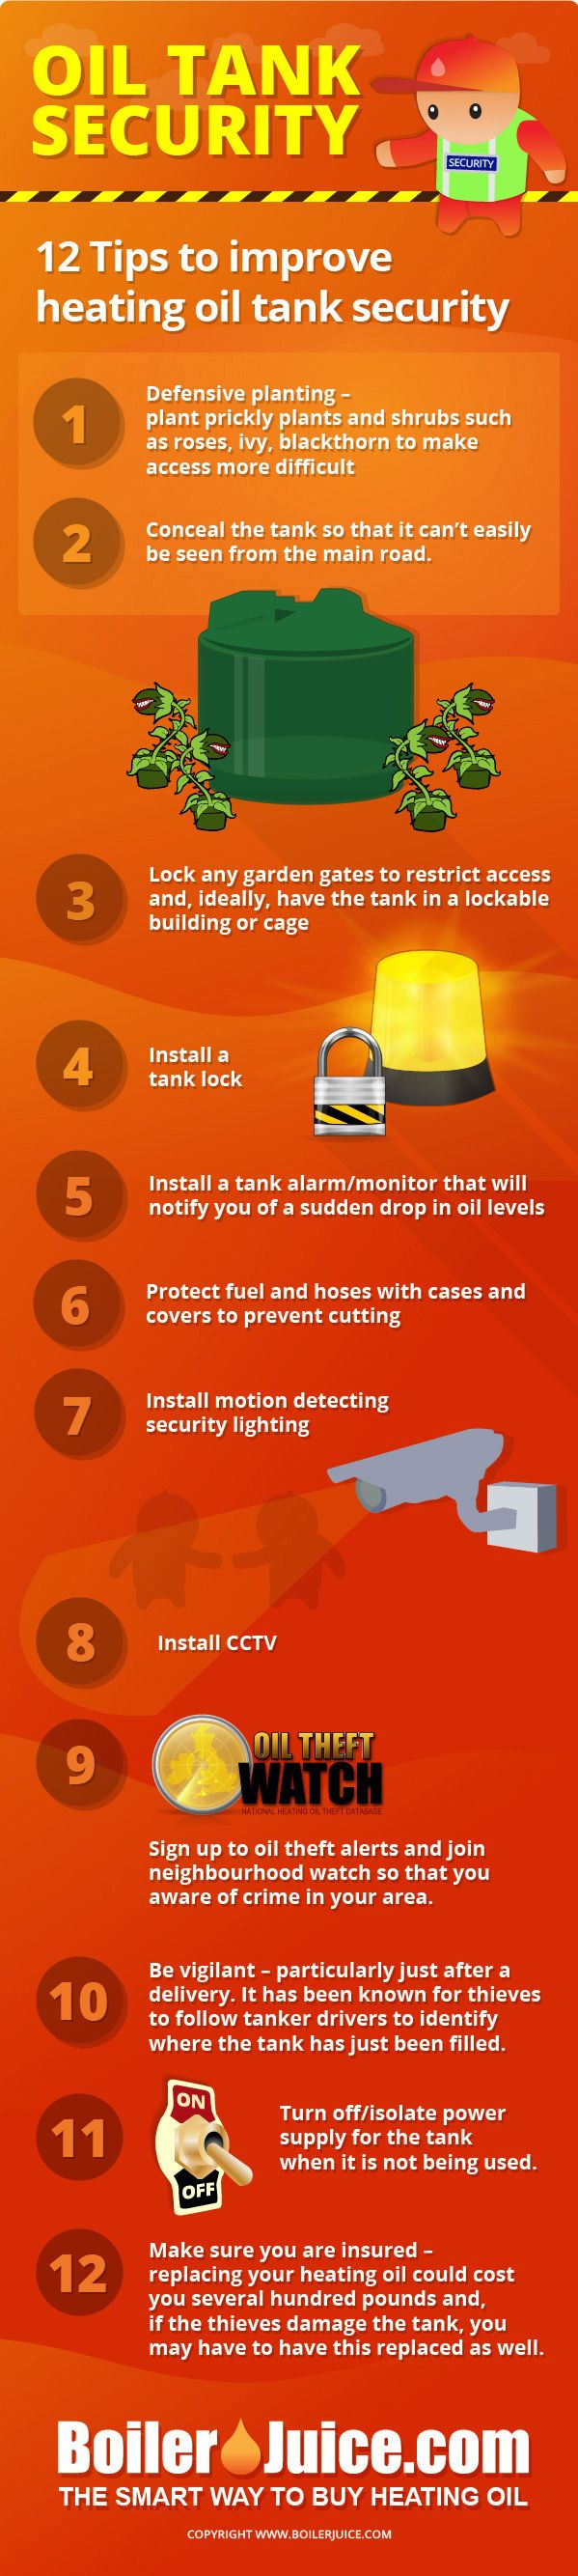 Heating-oil-tank-security-preventing-heating-oil-theft-infographic